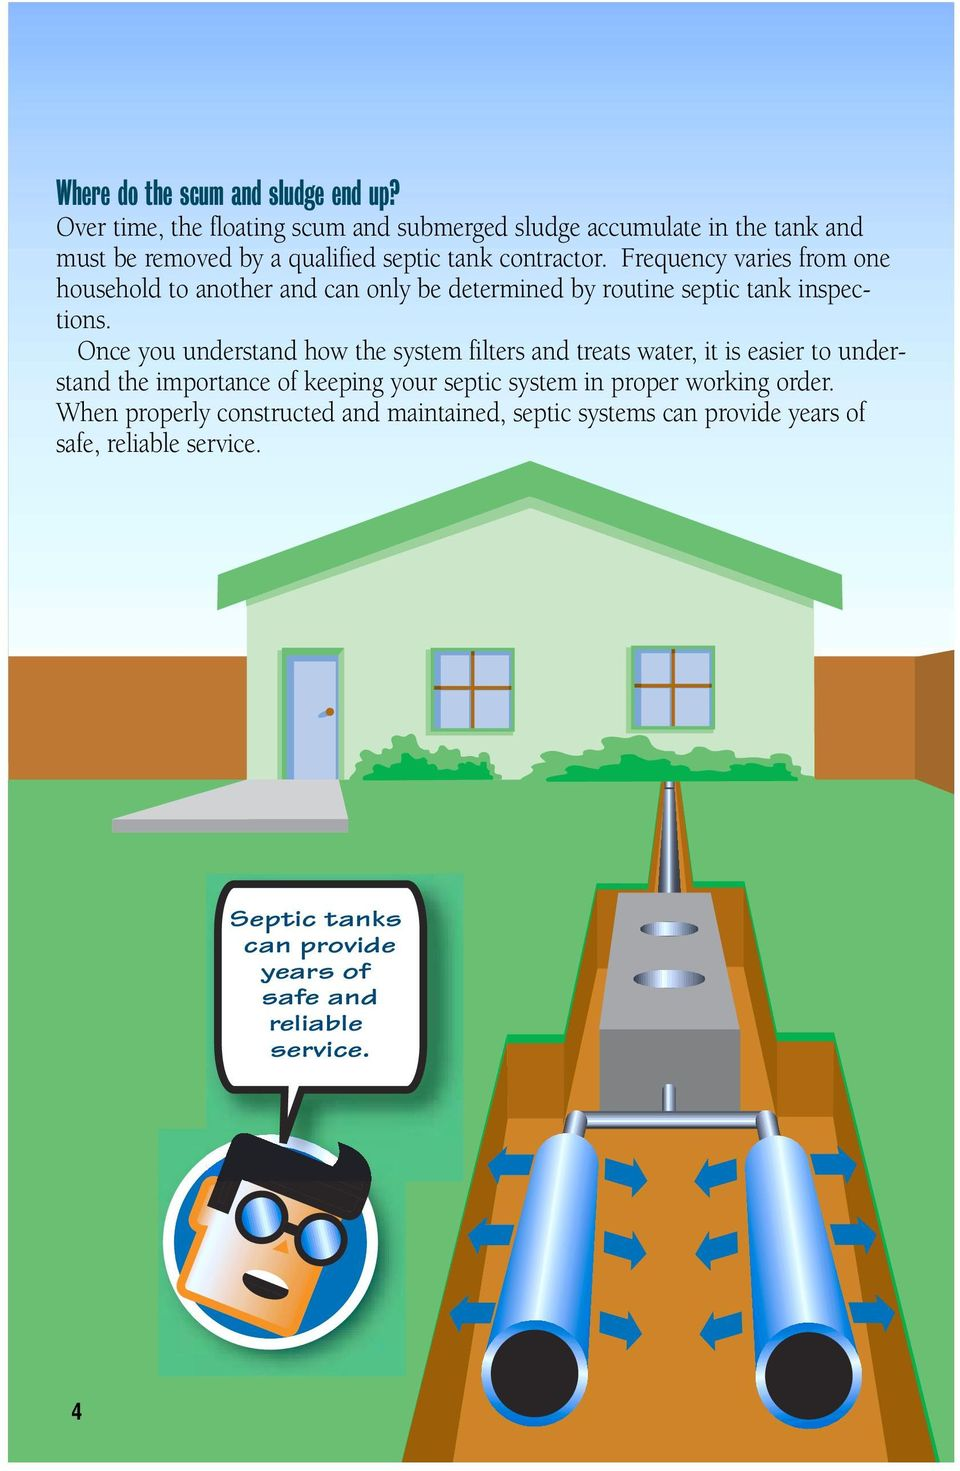 Frequency varies from one household to another and can only be determined by routine septic tank inspections.